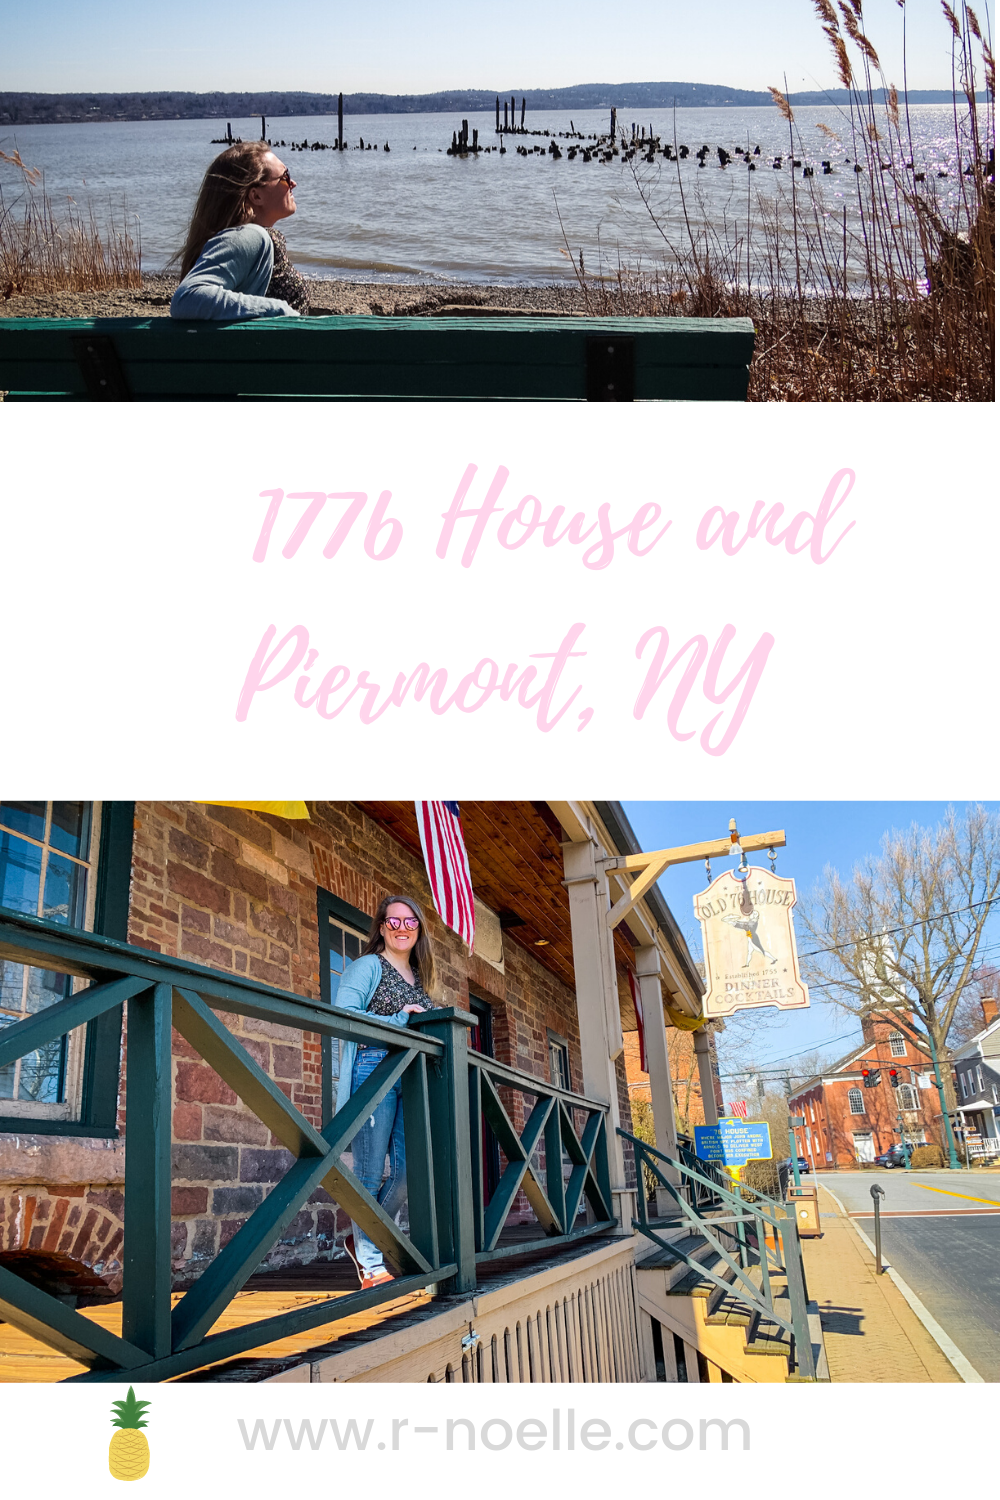 Piermont and Tappan New York are rich with history. Save this pin for your next travel adventure or exploring local history.